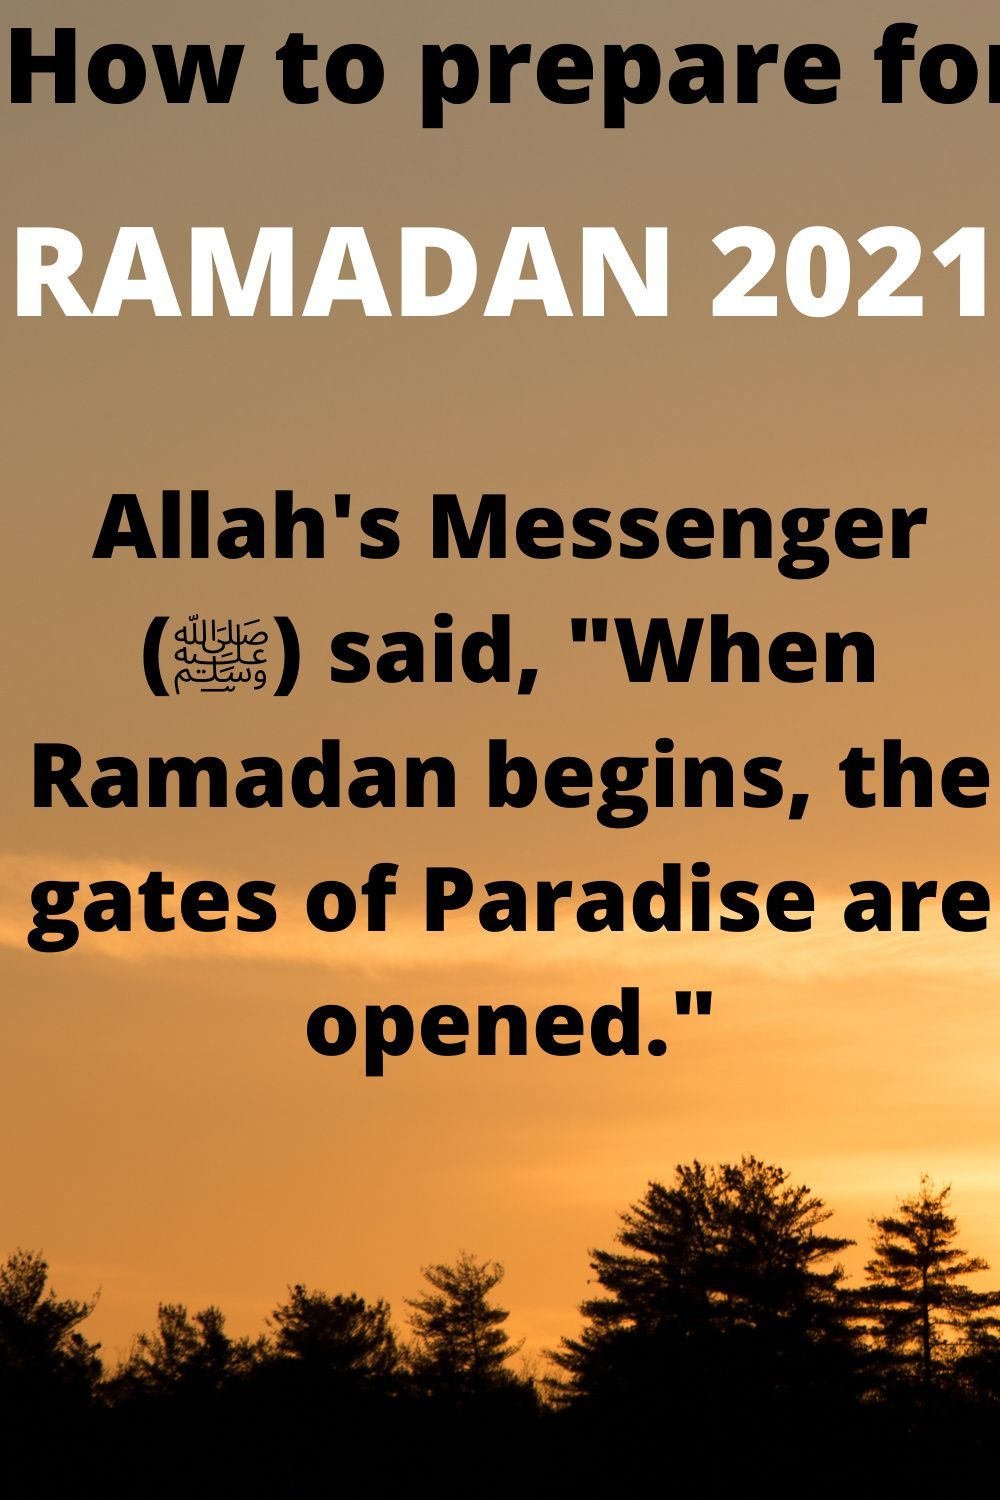 How To Prepare For Ramadan 2021 In 2021 Ramadan Preparing For Ramadan See And Say